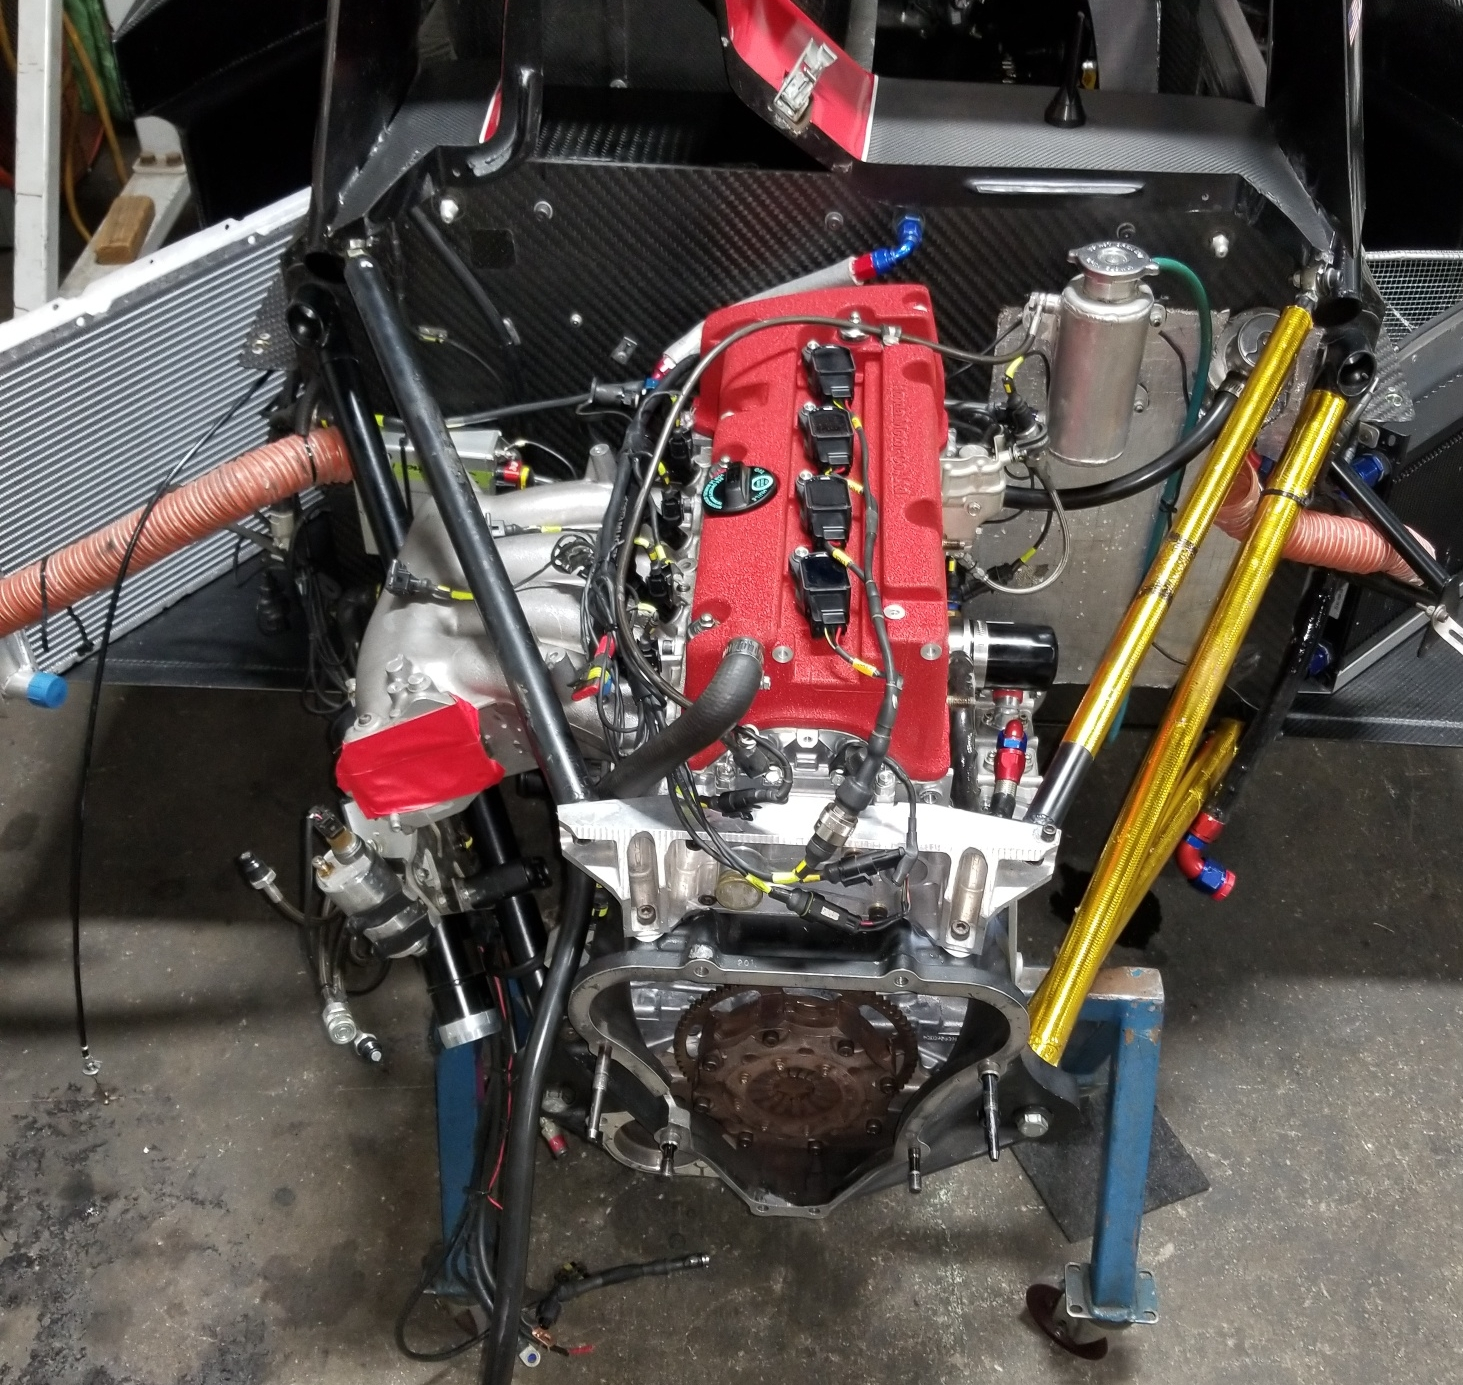 New rule compliant engine being installed